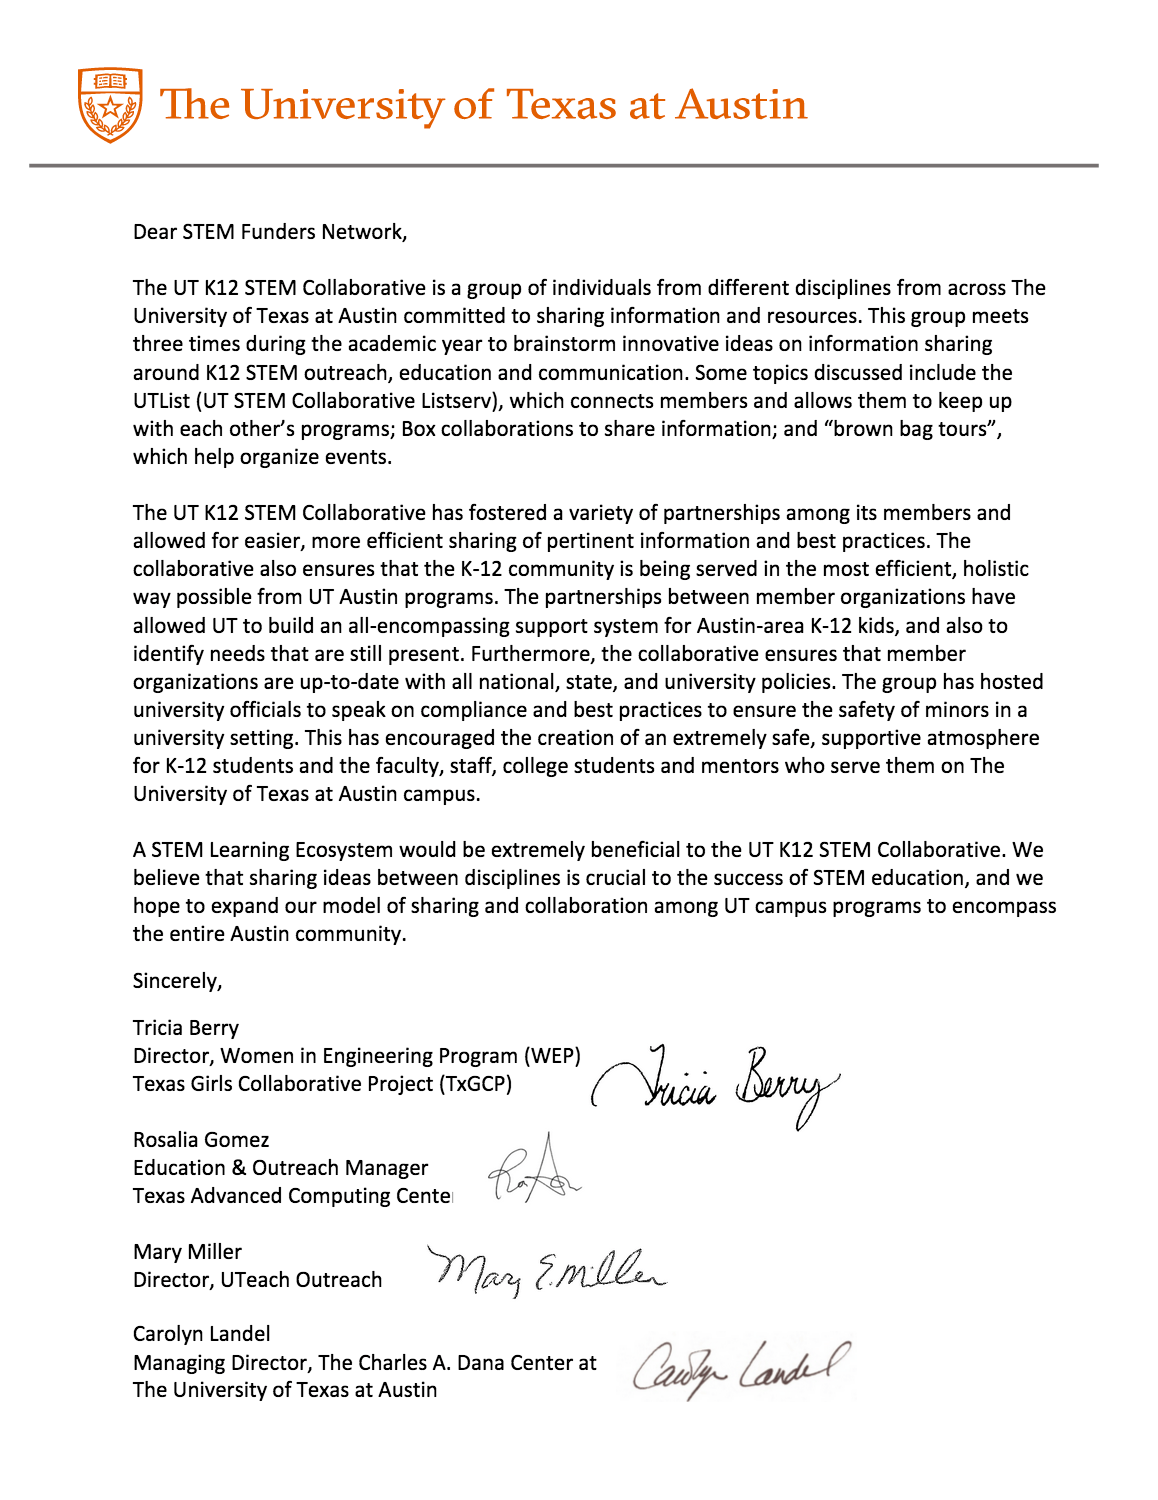 letter of support 2 about greater stem ecosystem 1426